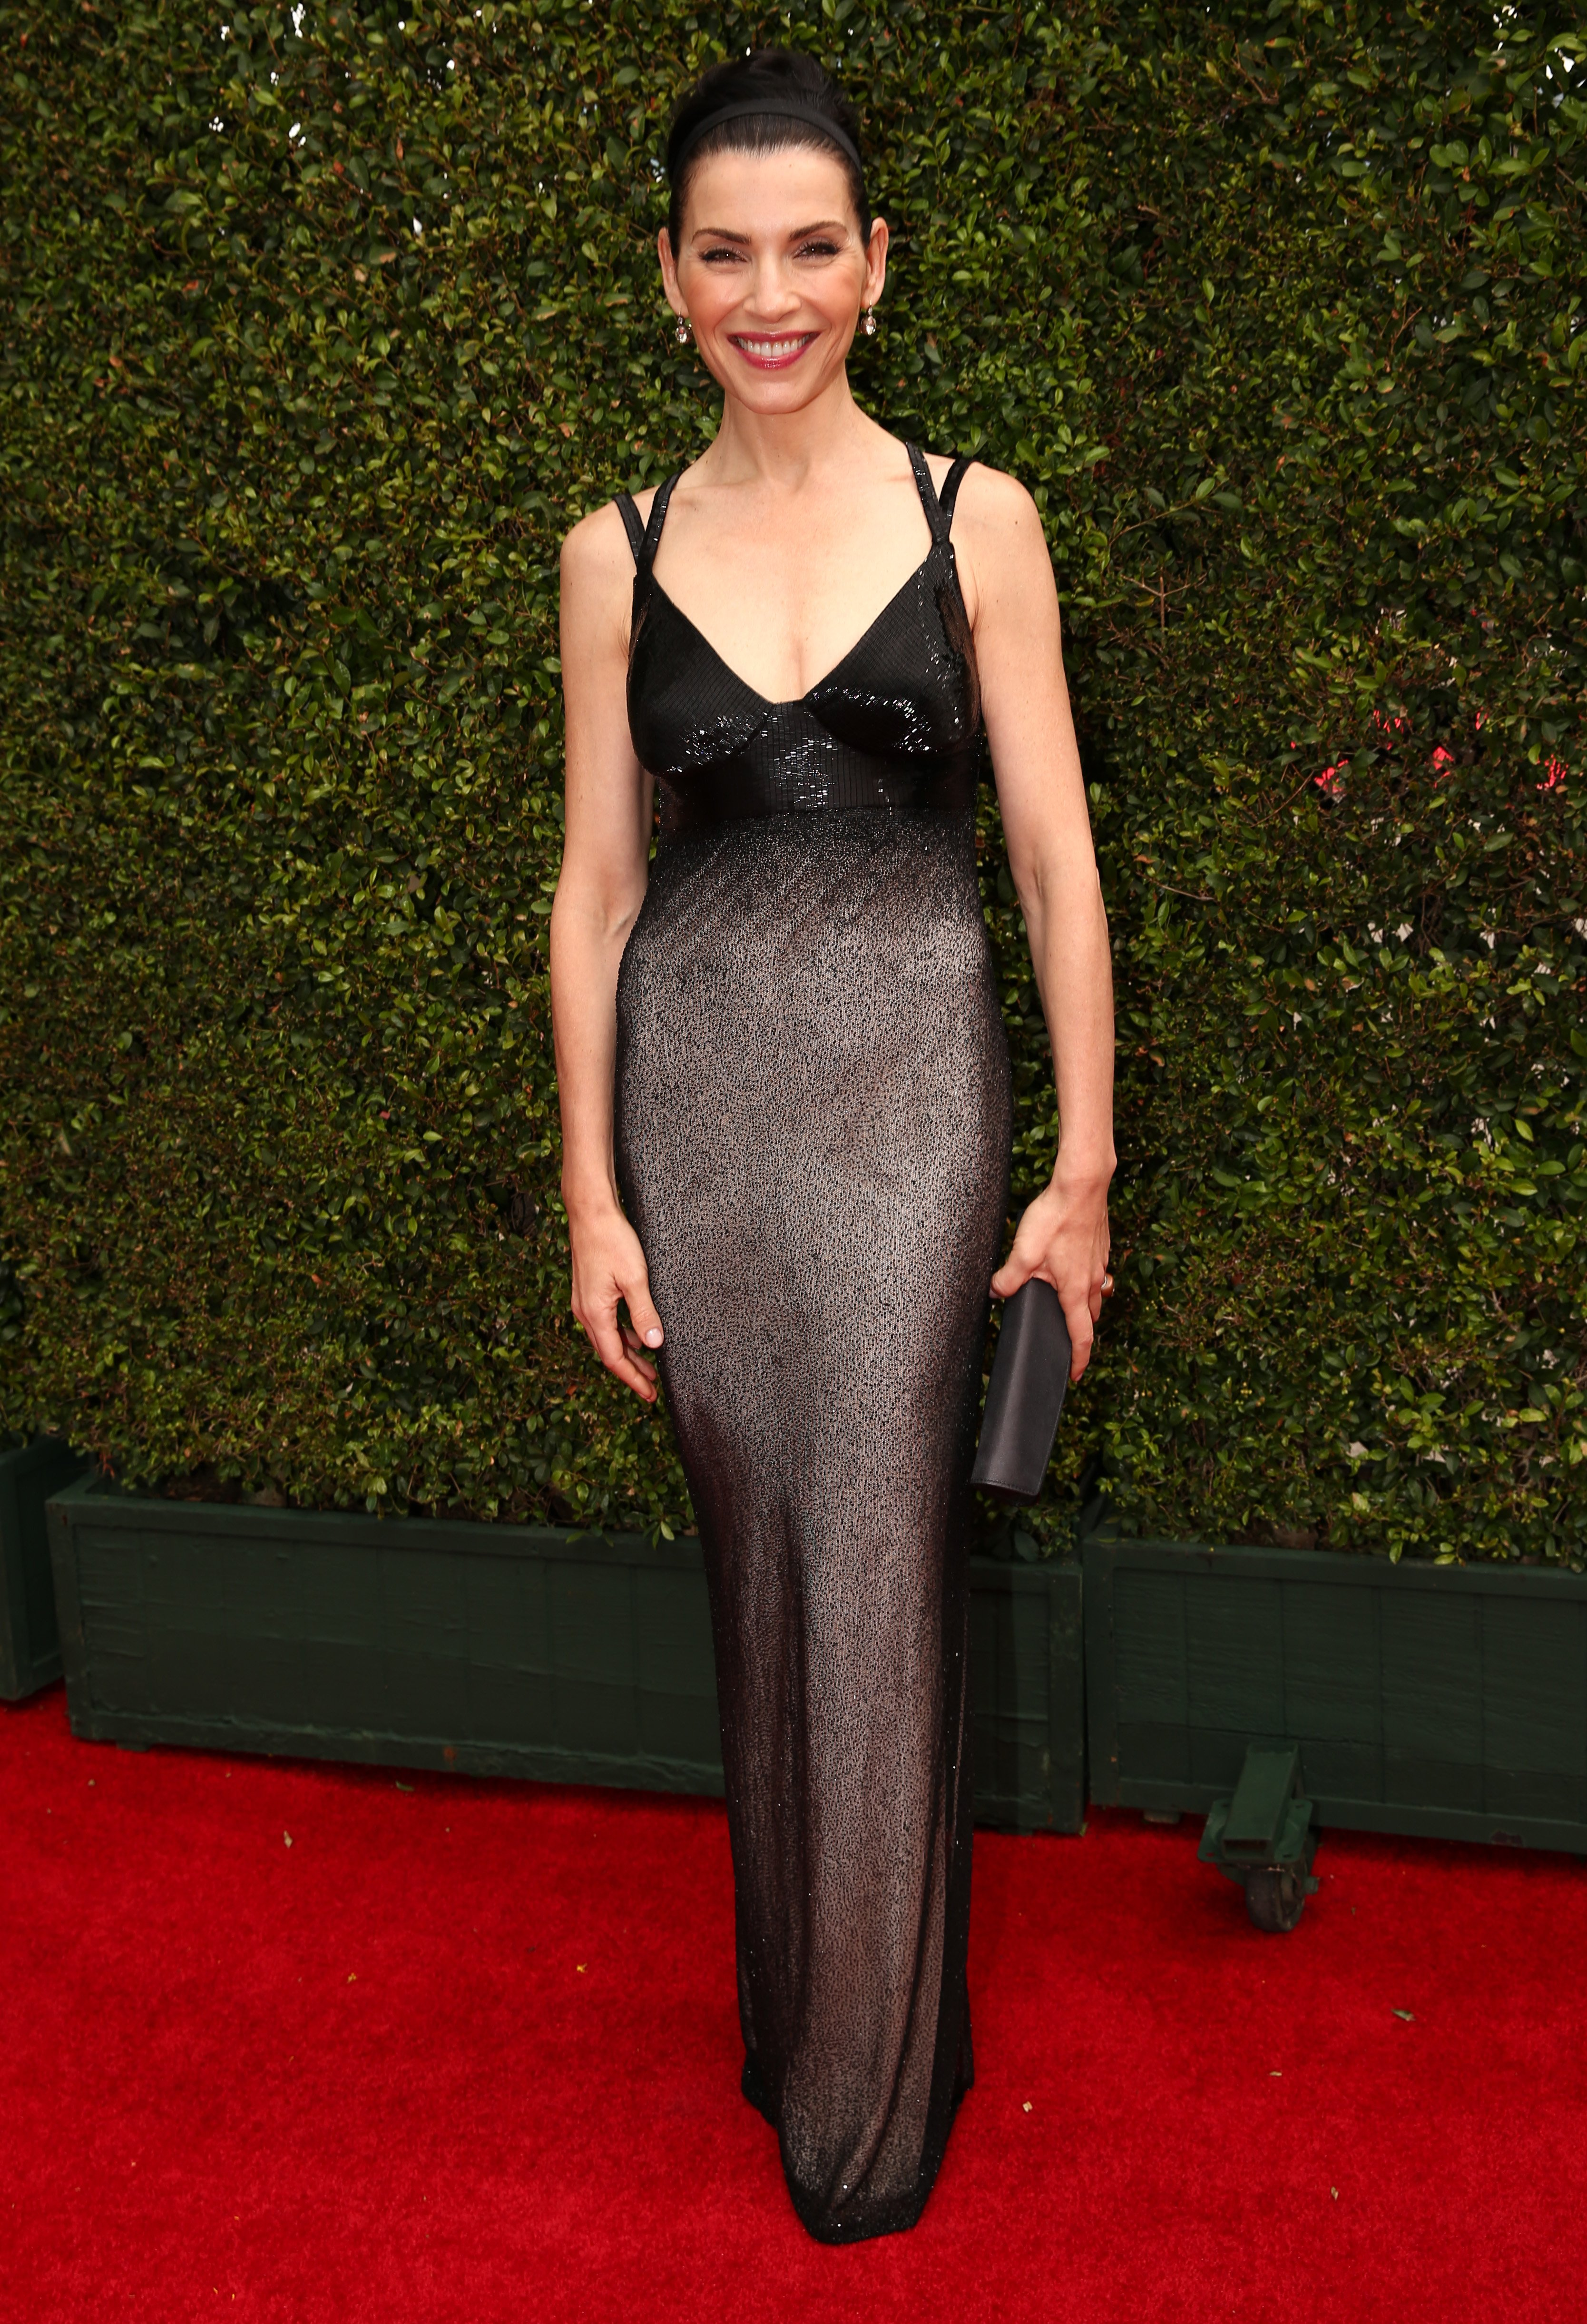 Julianna Margulies arrives to the 66th Annual Primetime Emmy Awards held at the Nokia Theater on August 25, 2014.